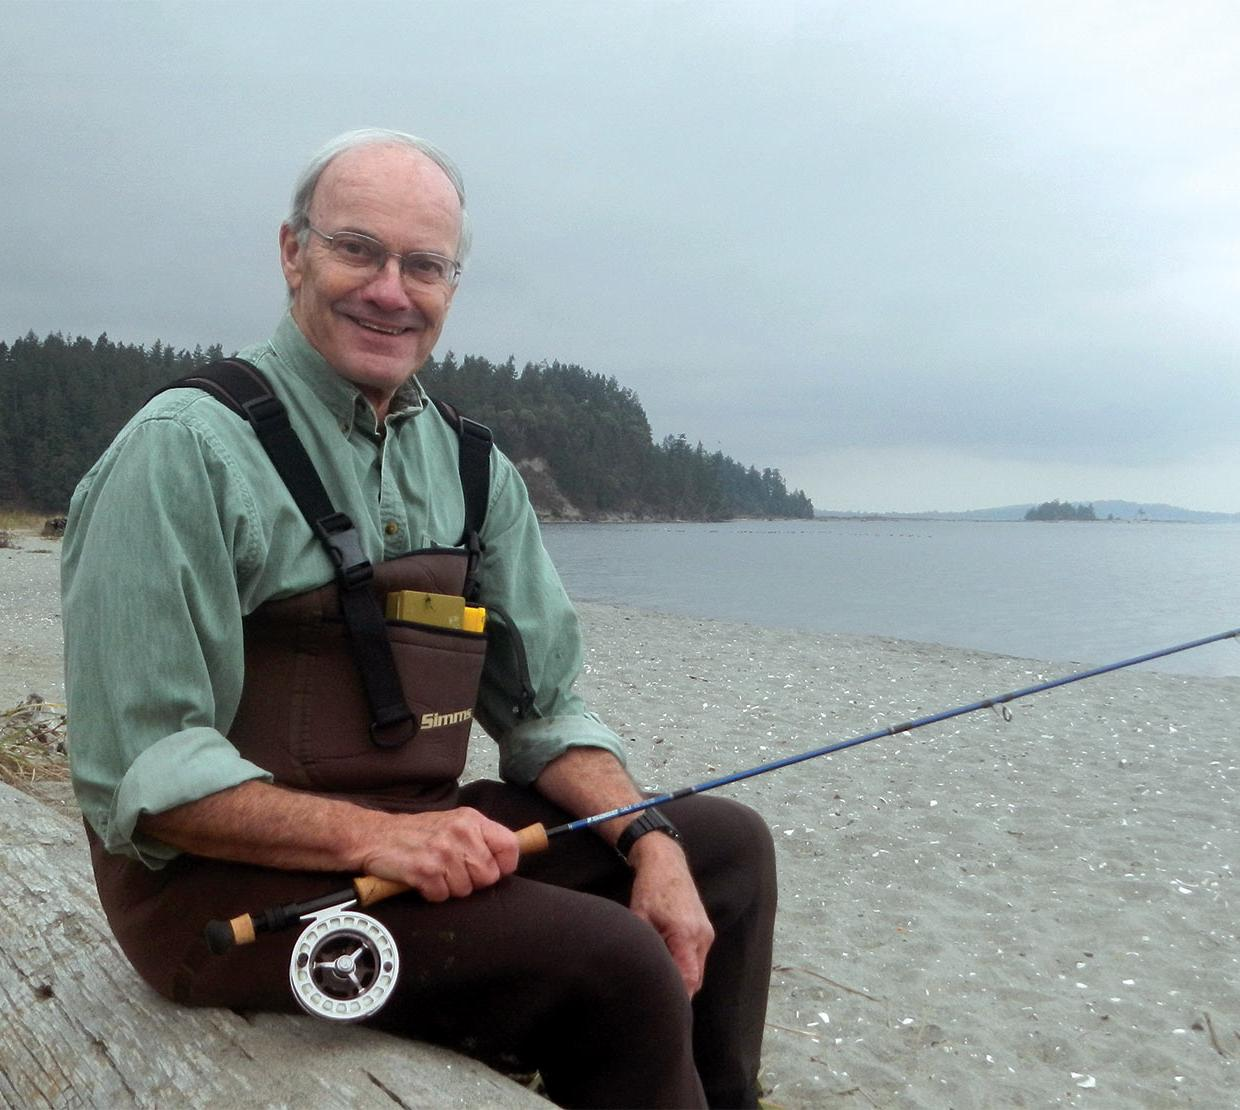 James Winton holding fishing pole sitting on log in foggy beach